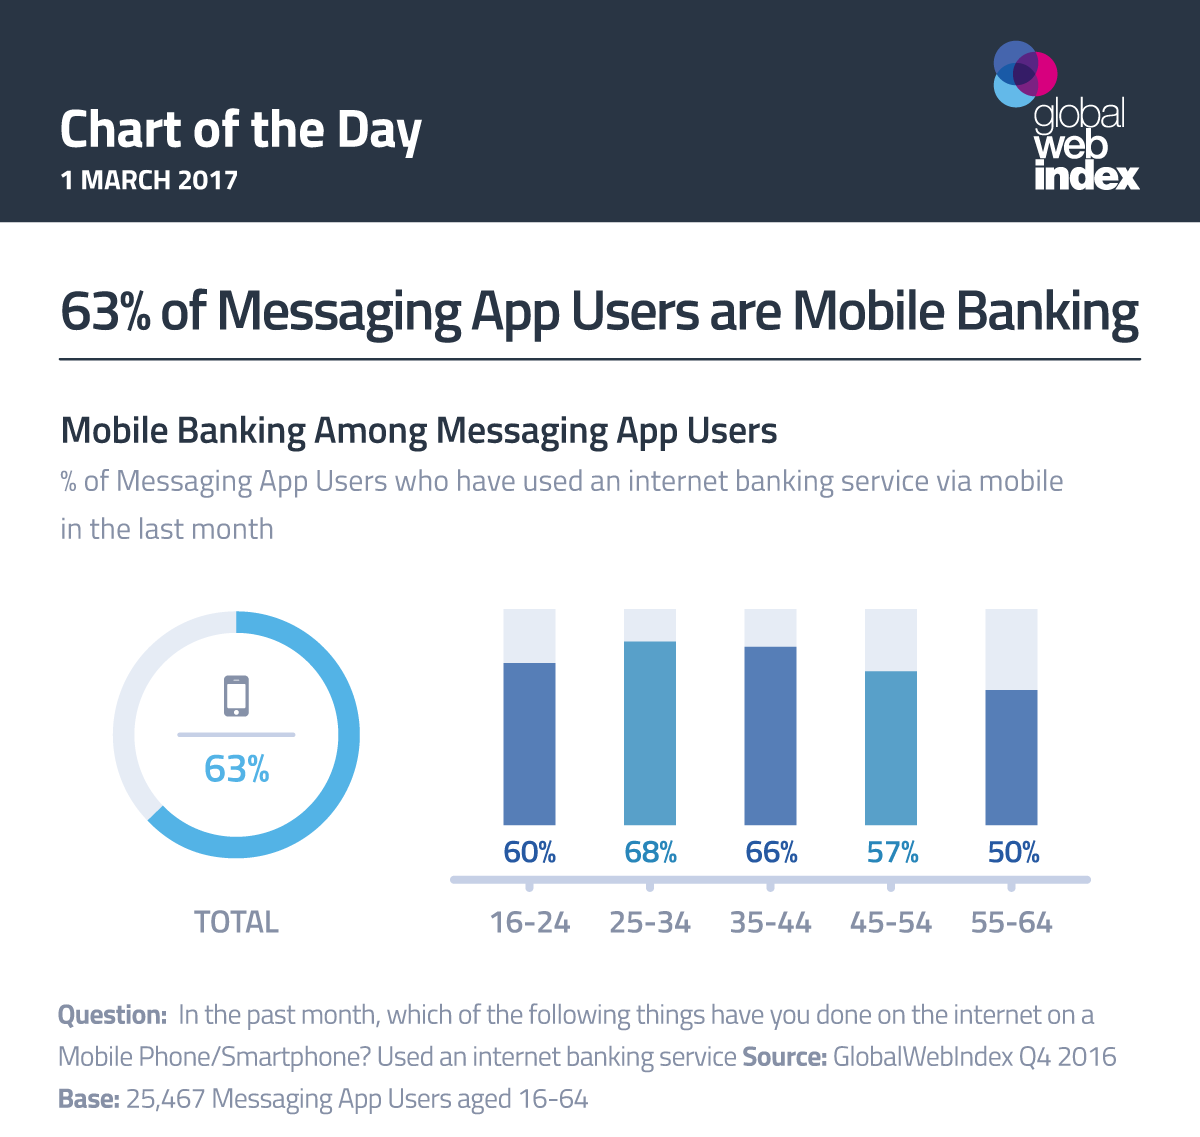 63% of Messaging App Users are Mobile Banking